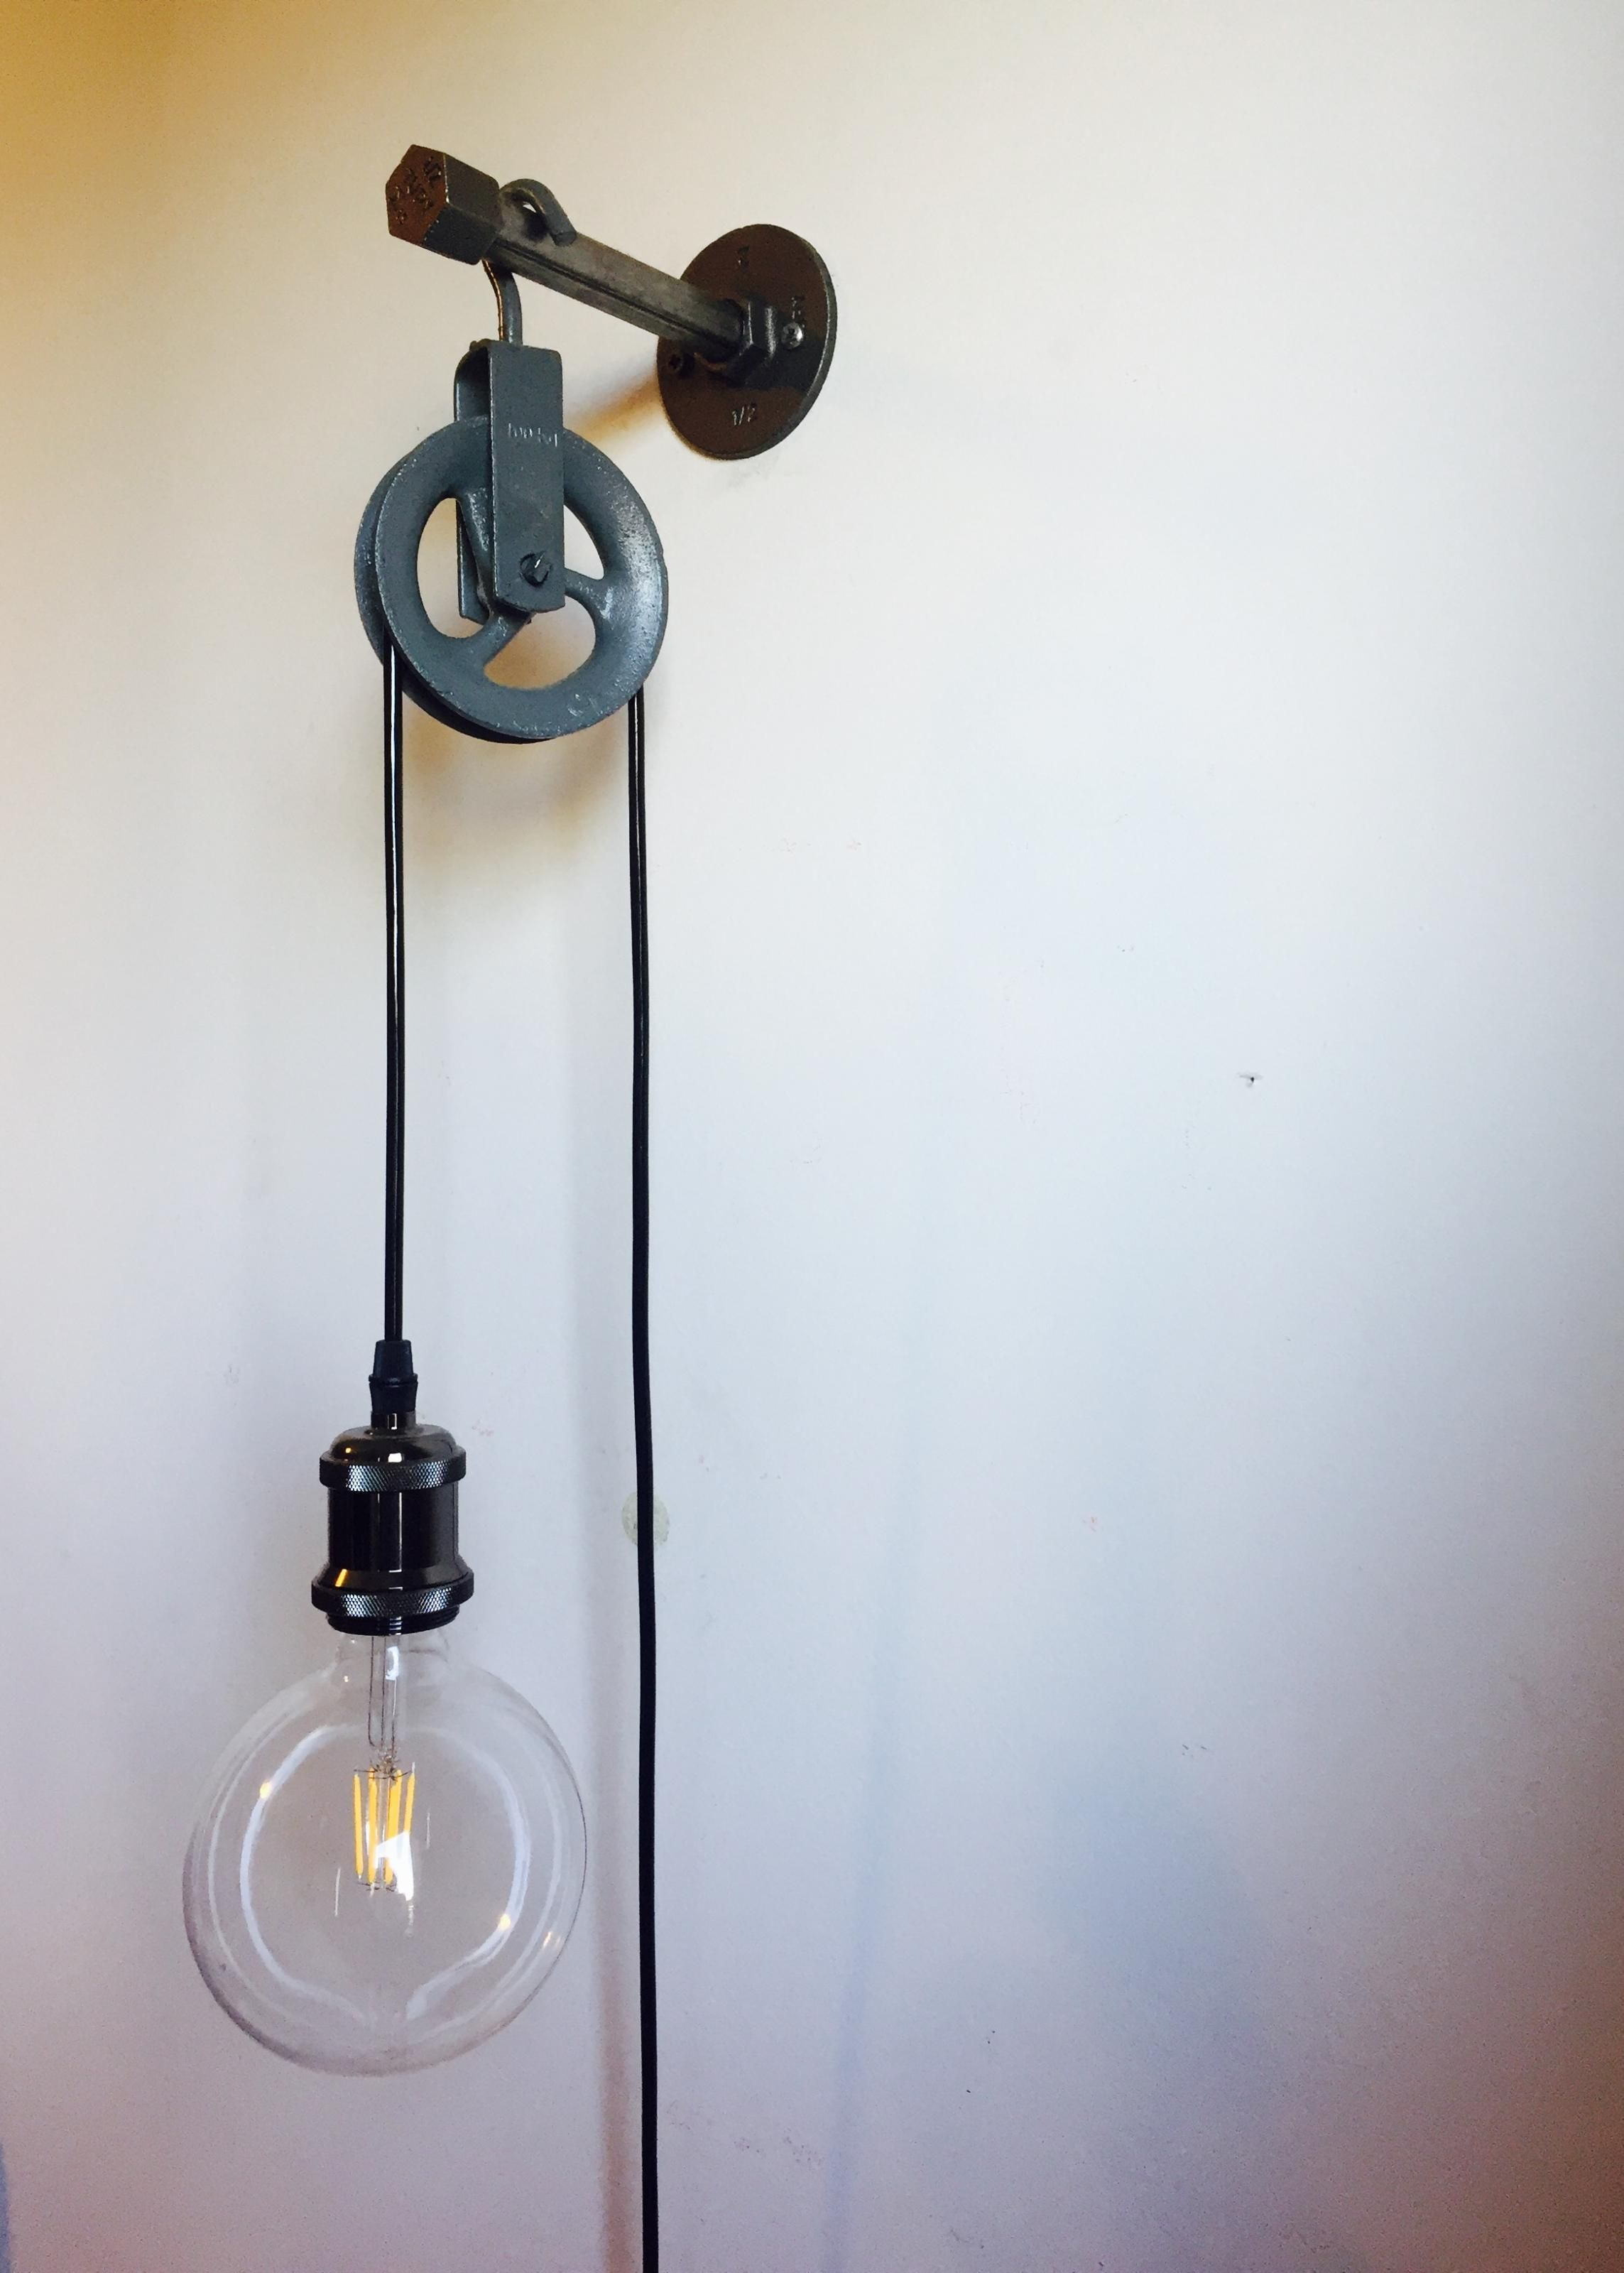 Pulley lamp in 2020 Pulley lamps, Cute room decor, Decor